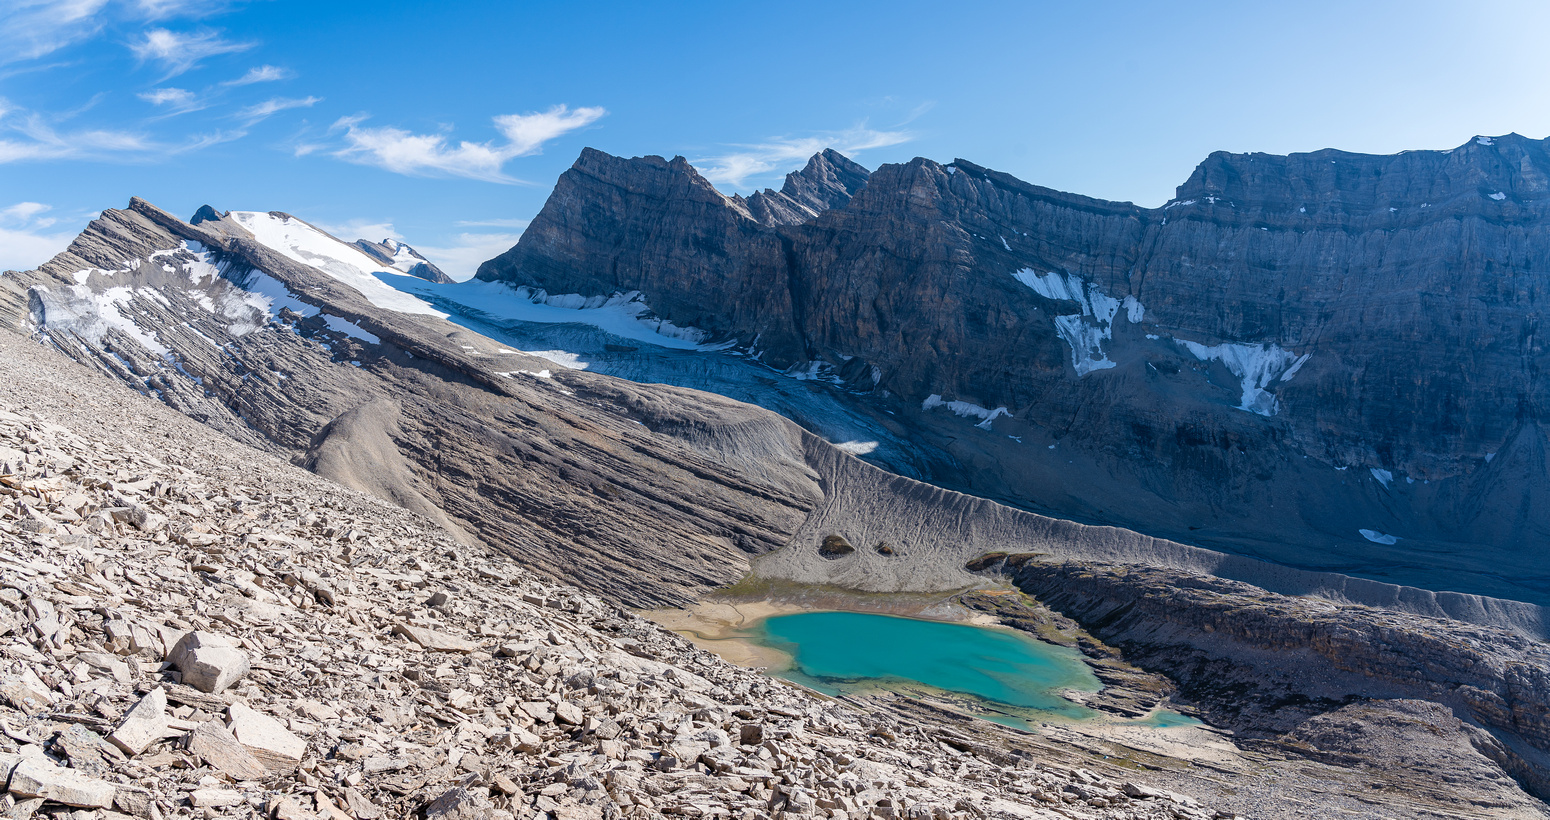 The glaciated col at left can be used to traverse down to Three Brothers Lake and Cataract Peak.